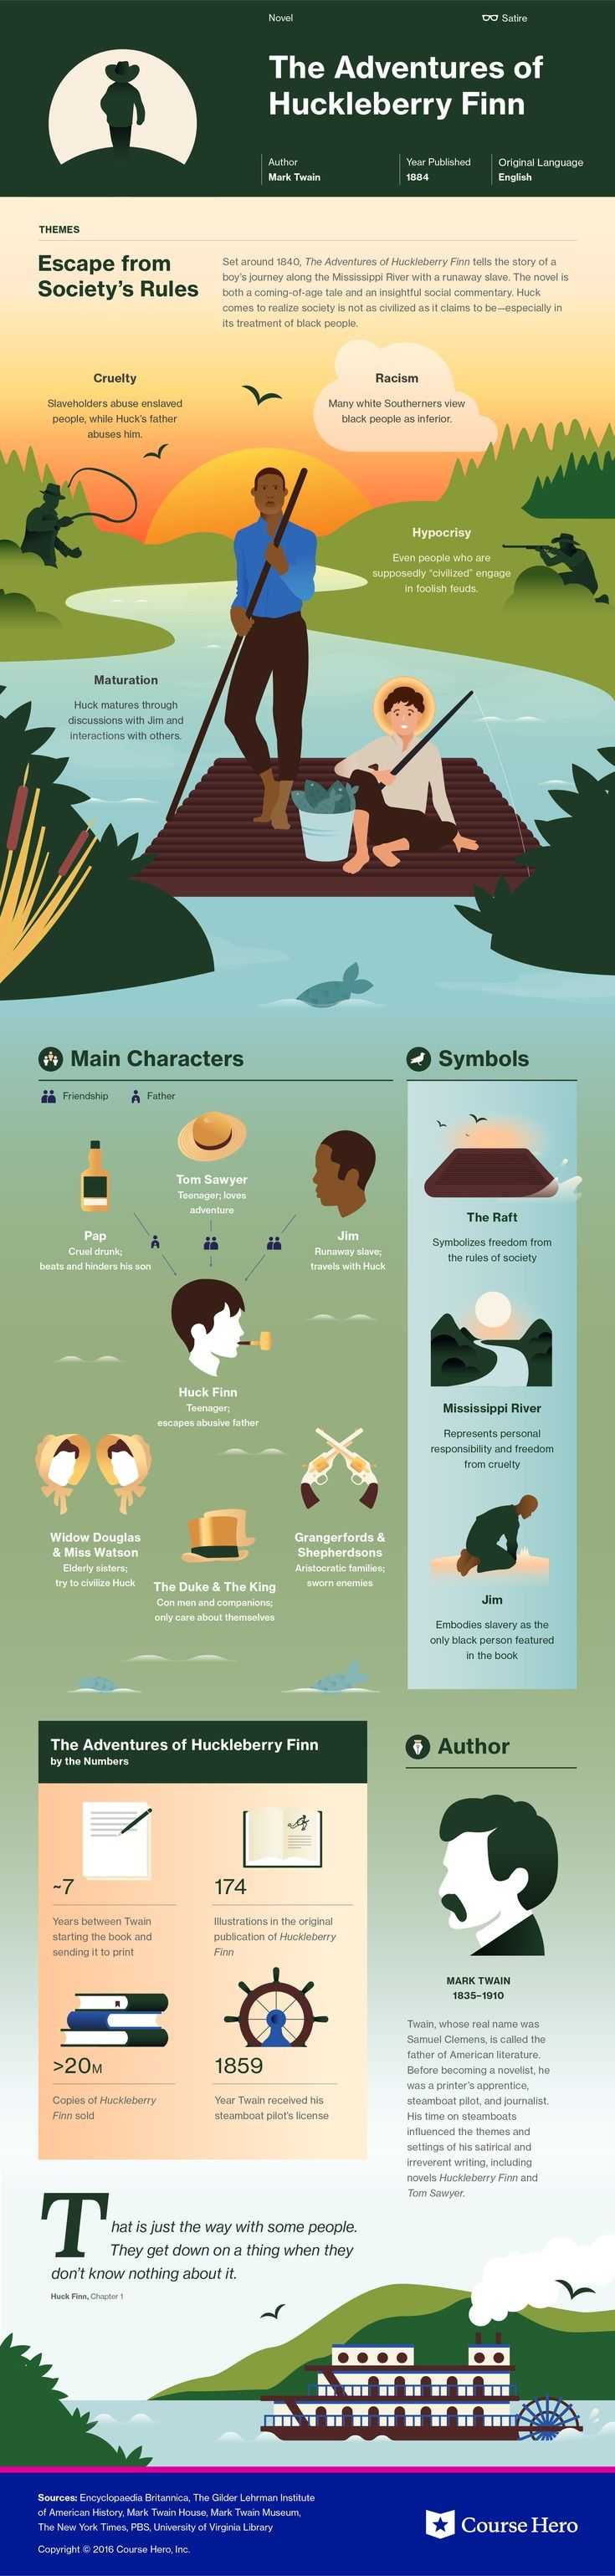 best ideas about american literature history of check out study guide for mark twain s the adventures of huckleberry finn including chapter summary character analysis and more